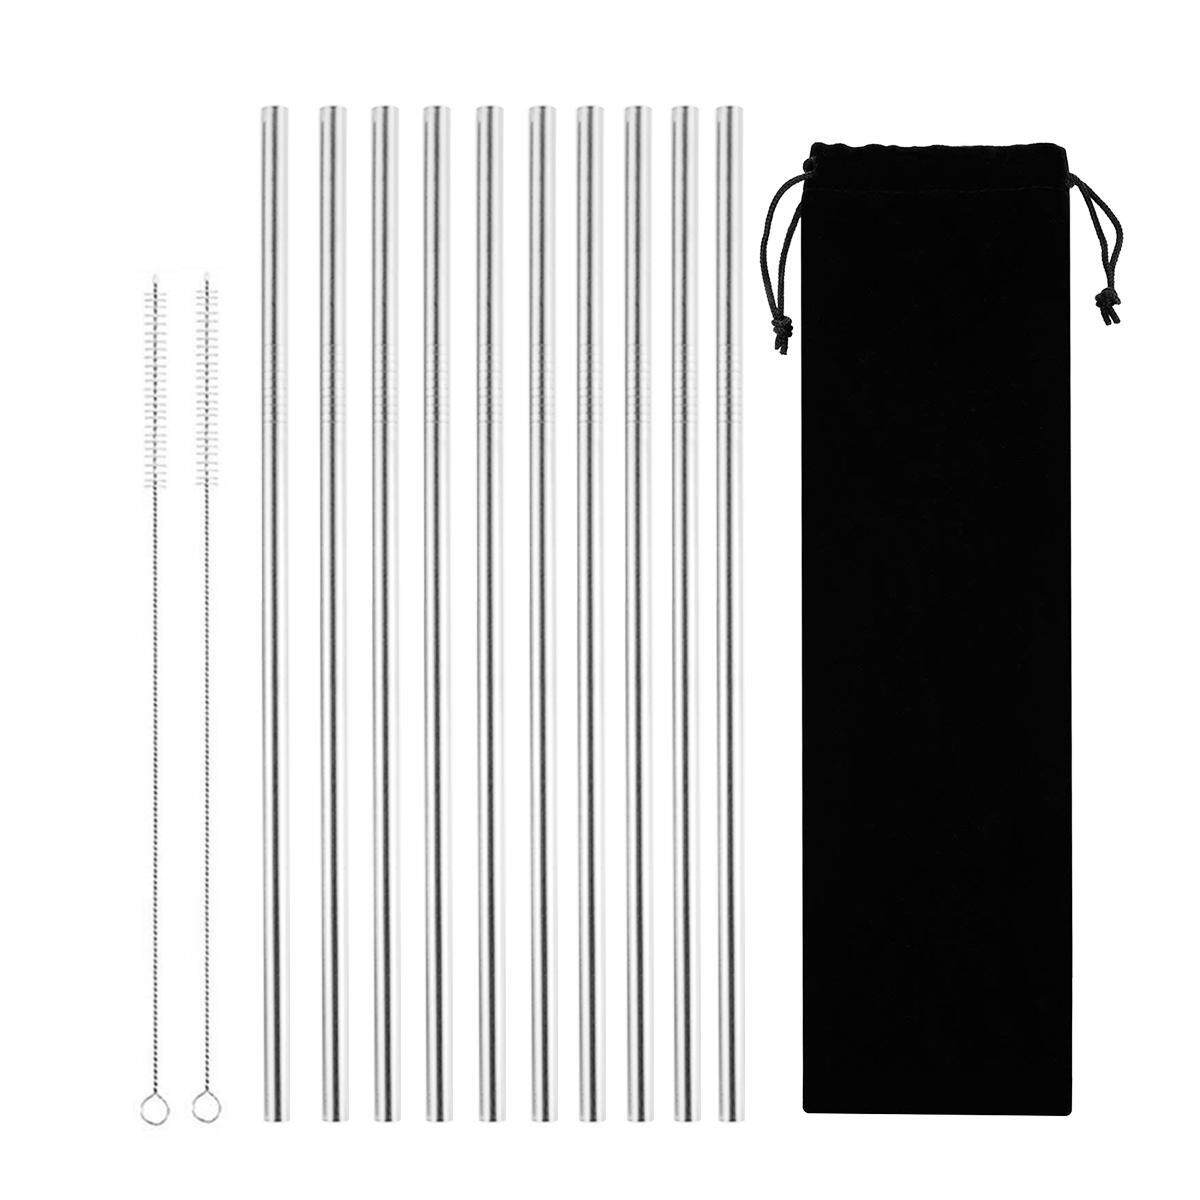 Reusable Stainless Steel Straws 10 Pack,10.5 Inch Straight Long Straws Fit for Yeti and 30 Tumbler 2 Straw Cleaning Brushes and Carry Bag Included,FDA Approved and BPA Free